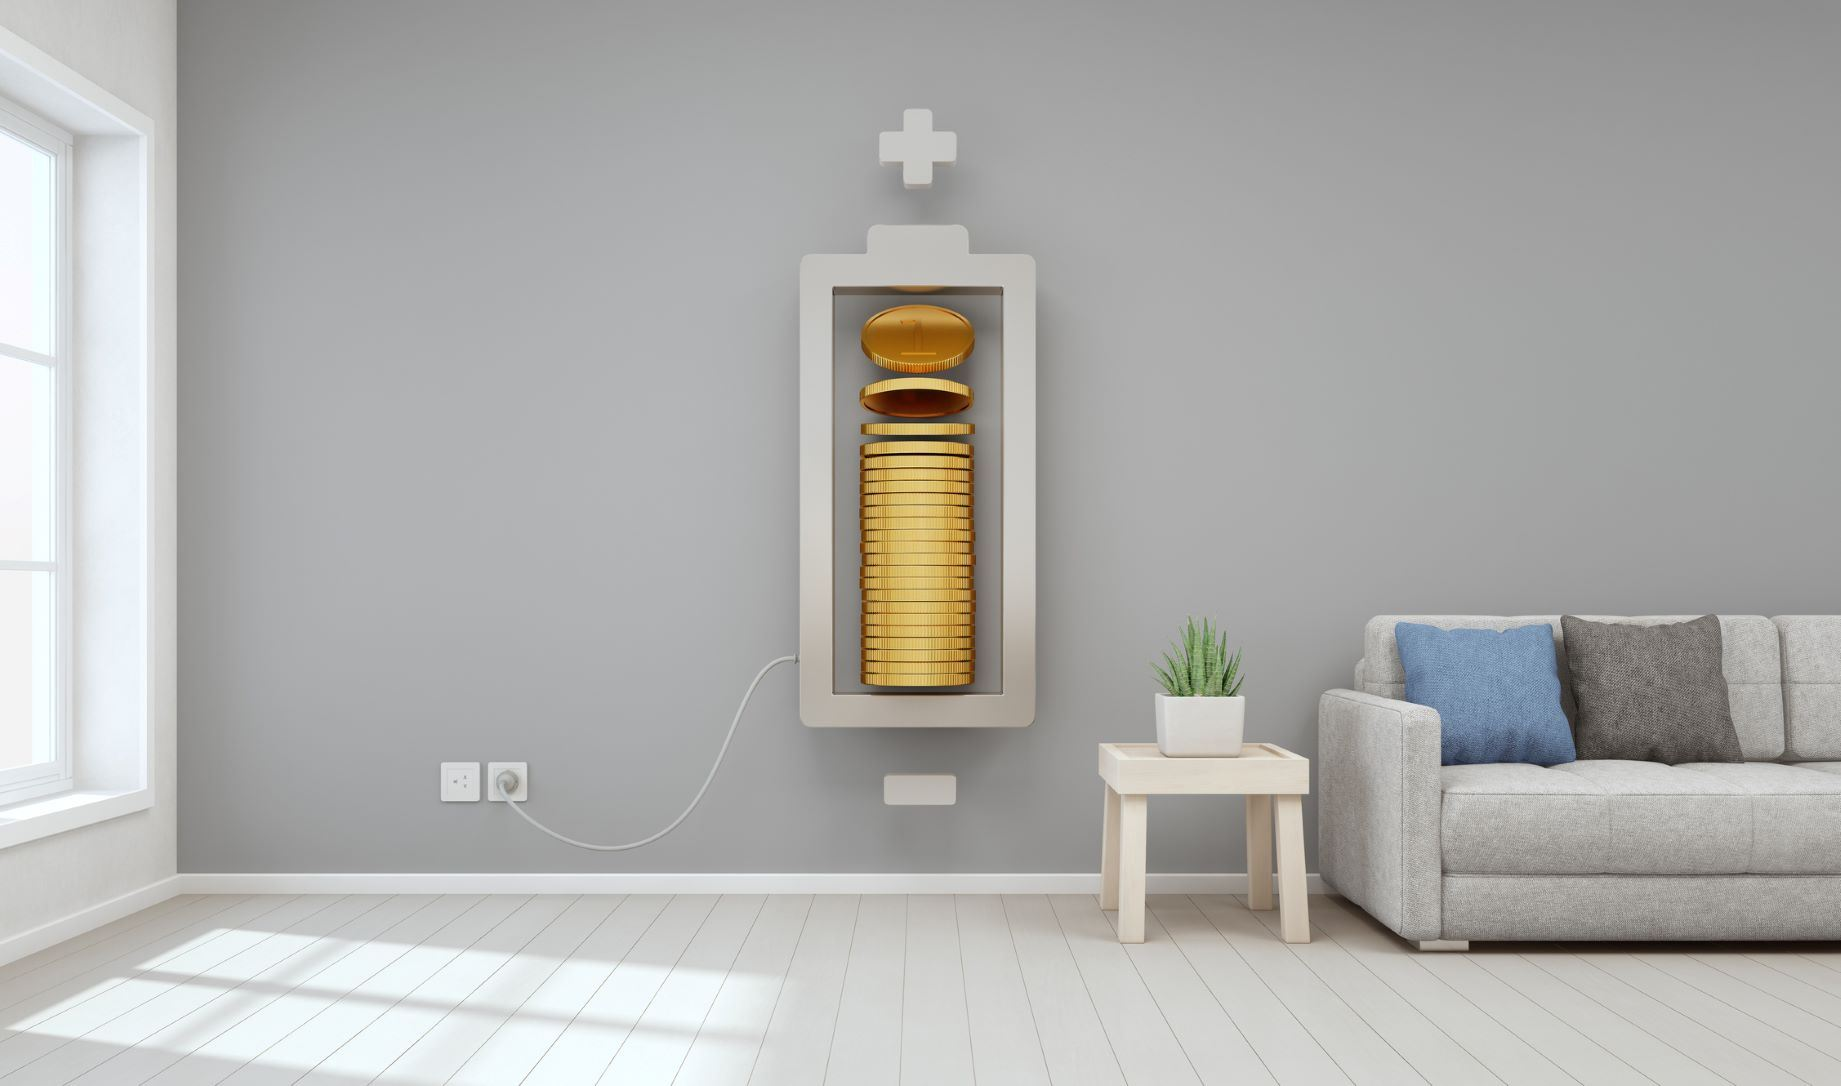 solarbatteryhome